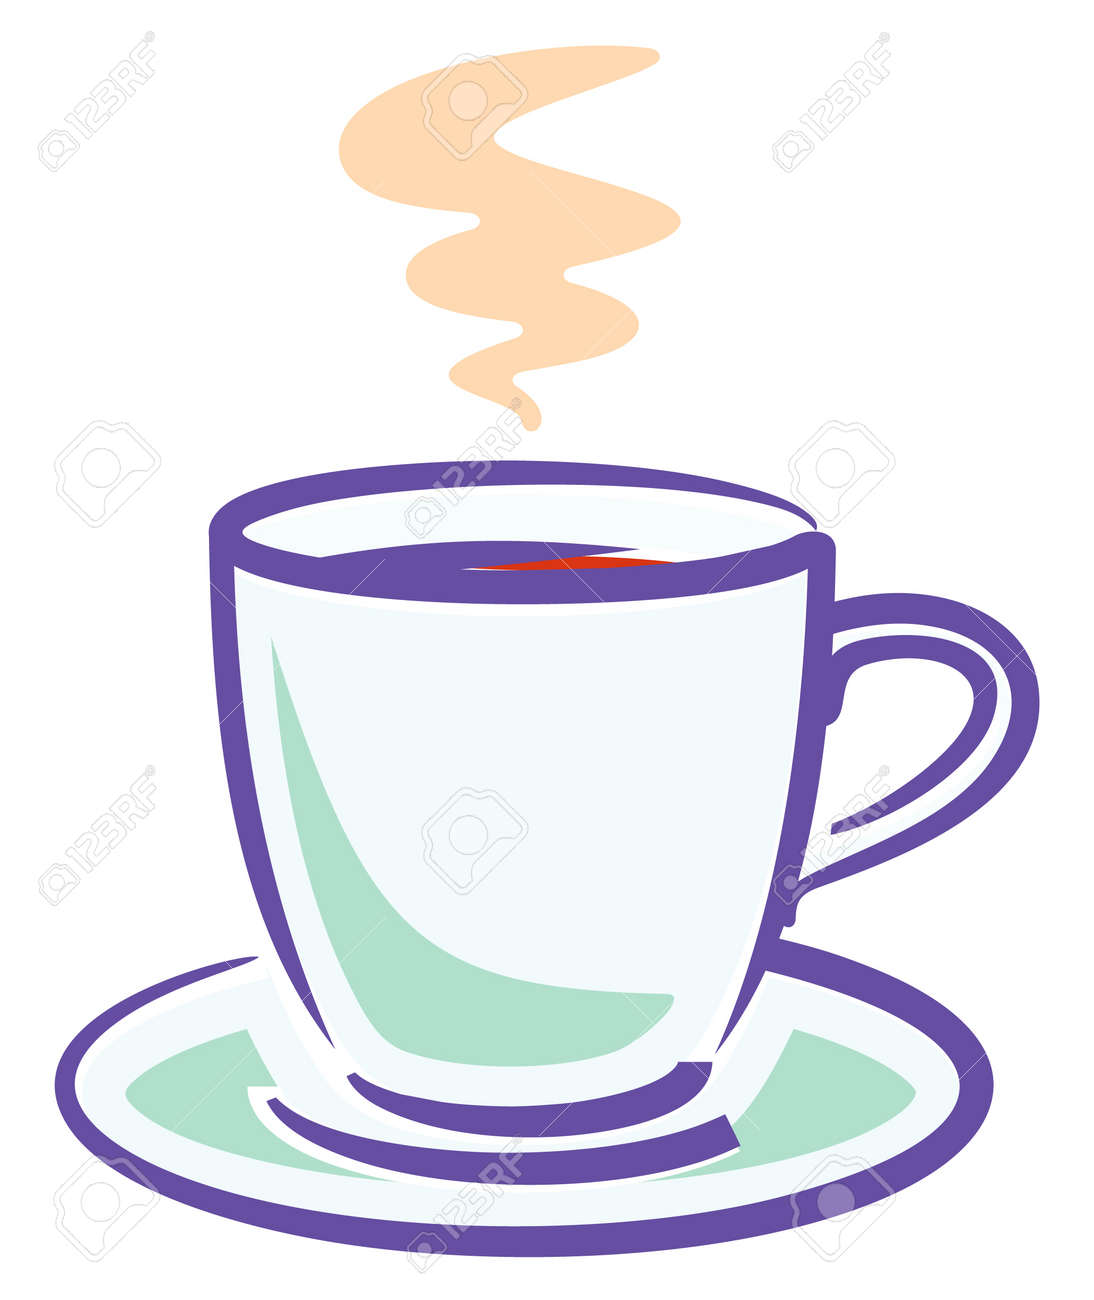 Tasse clipart  Cup Of Coffee (Vector) Royalty Free Cliparts, Vectors, And Stock ...